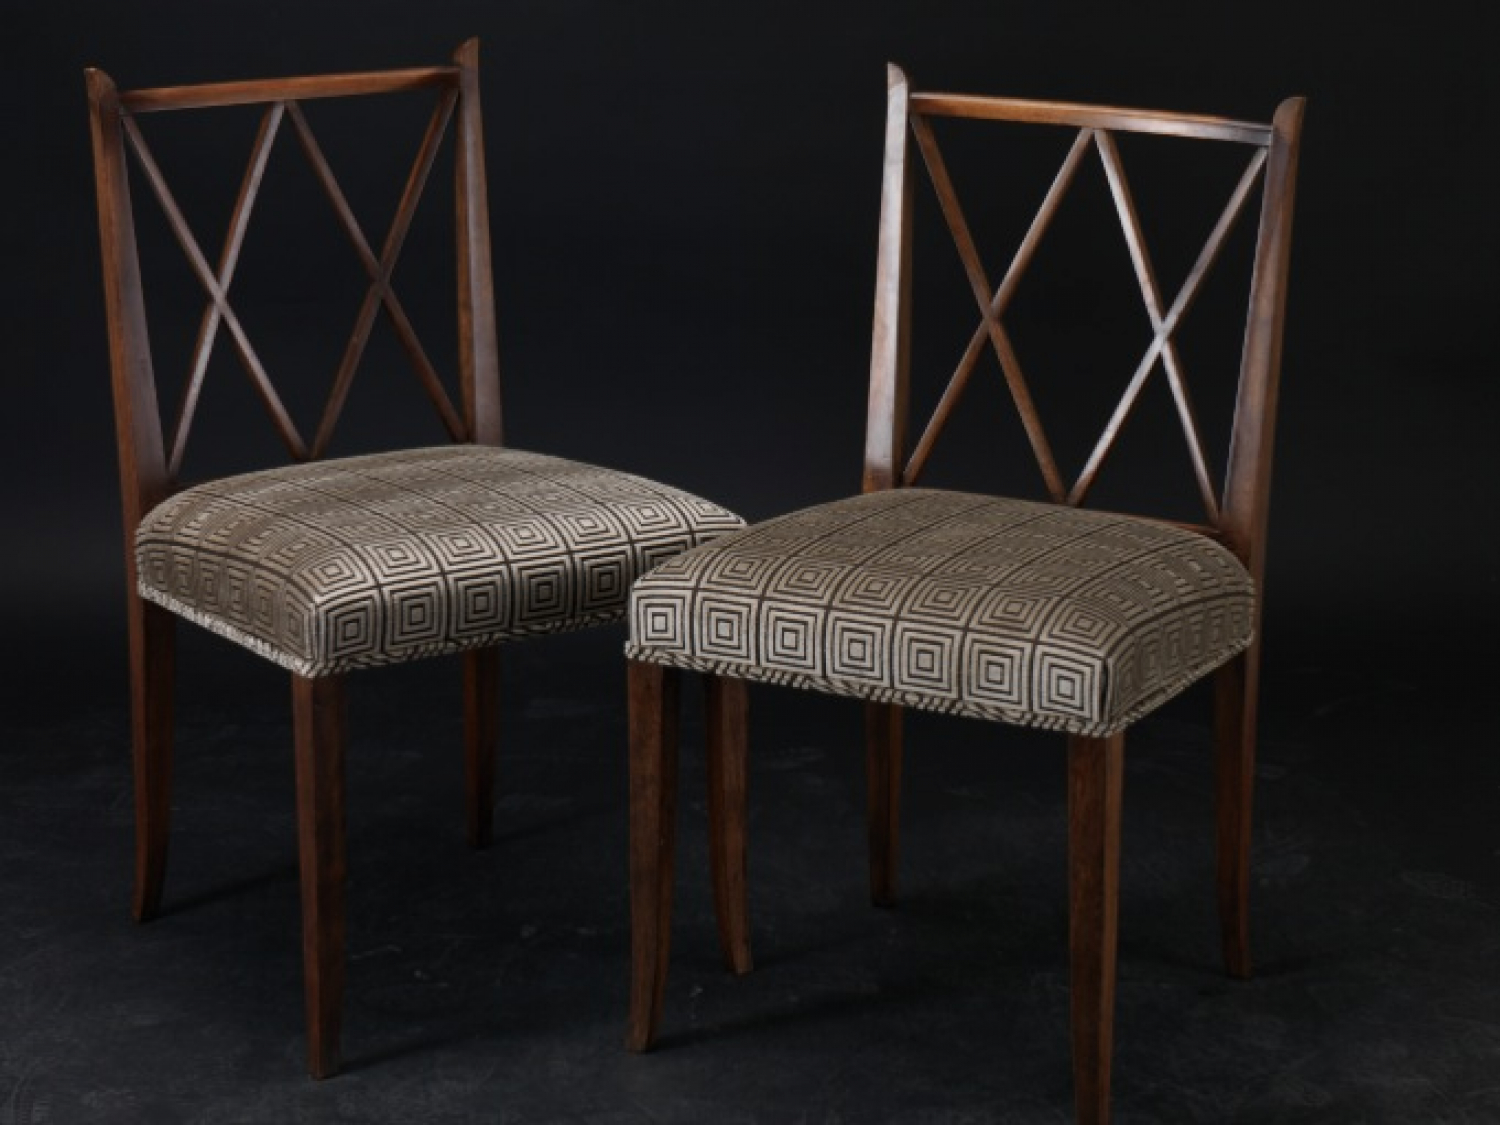 Four walnut Dining Chairs designed by Tommi Parzinger 1946